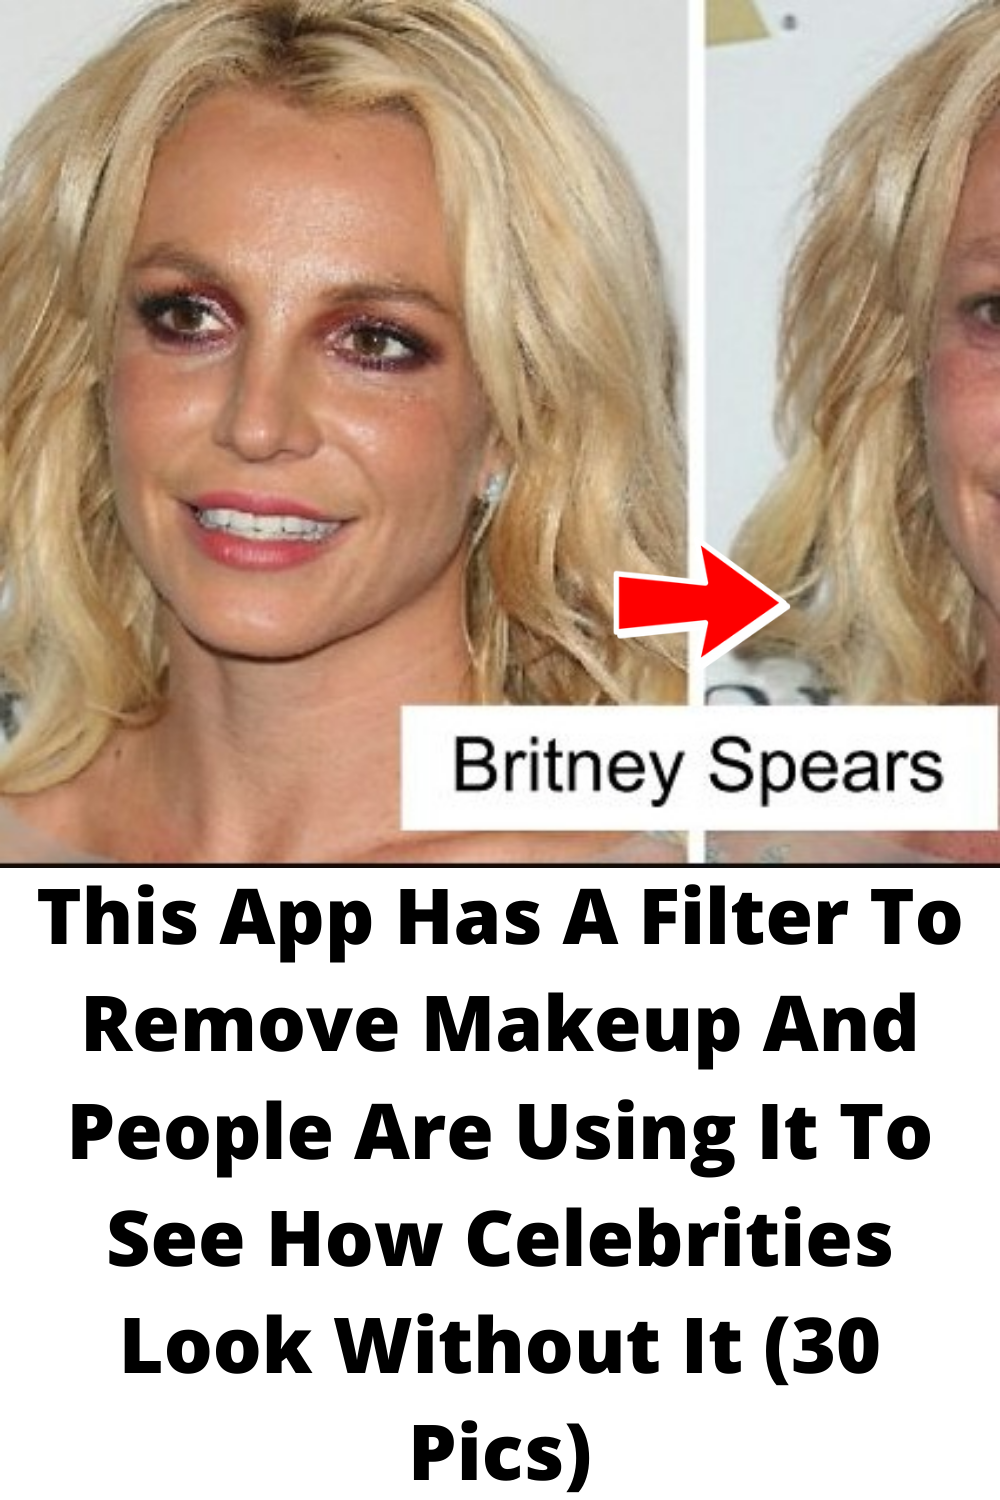 This App Has A Filter To Remove Makeup And People Are